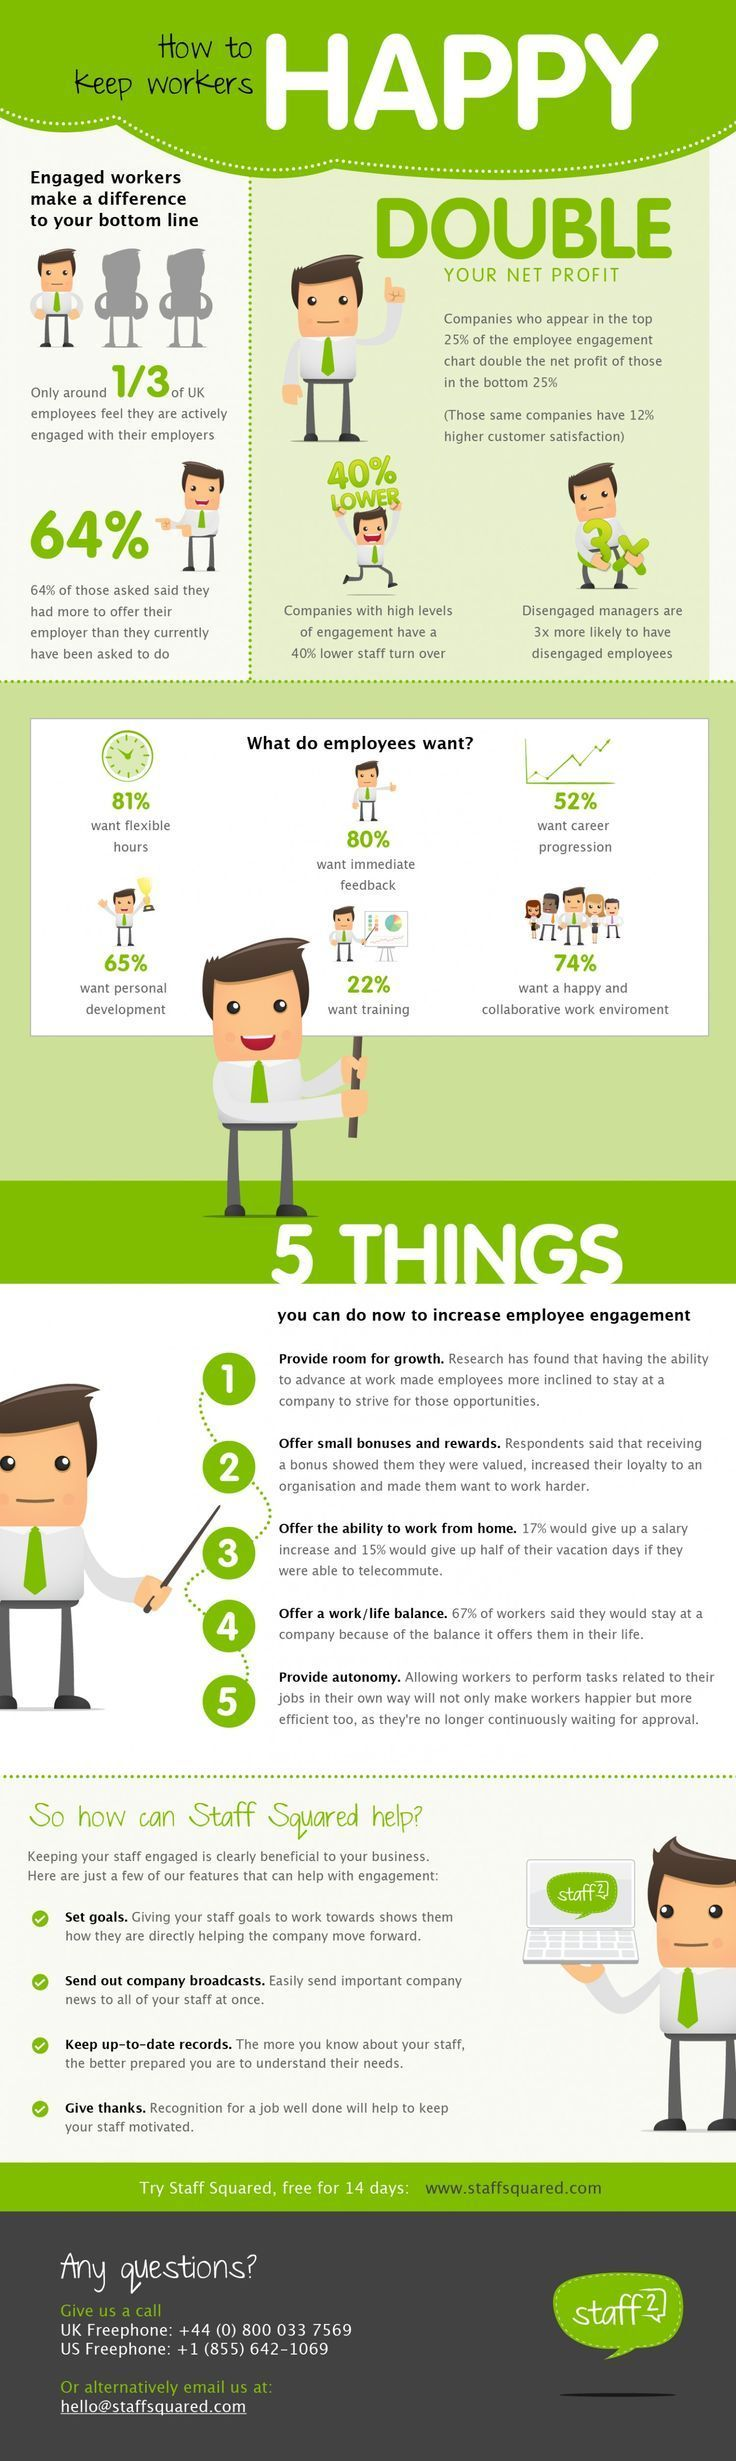 best ideas about how to motivate employees infographic employee recognition motivation